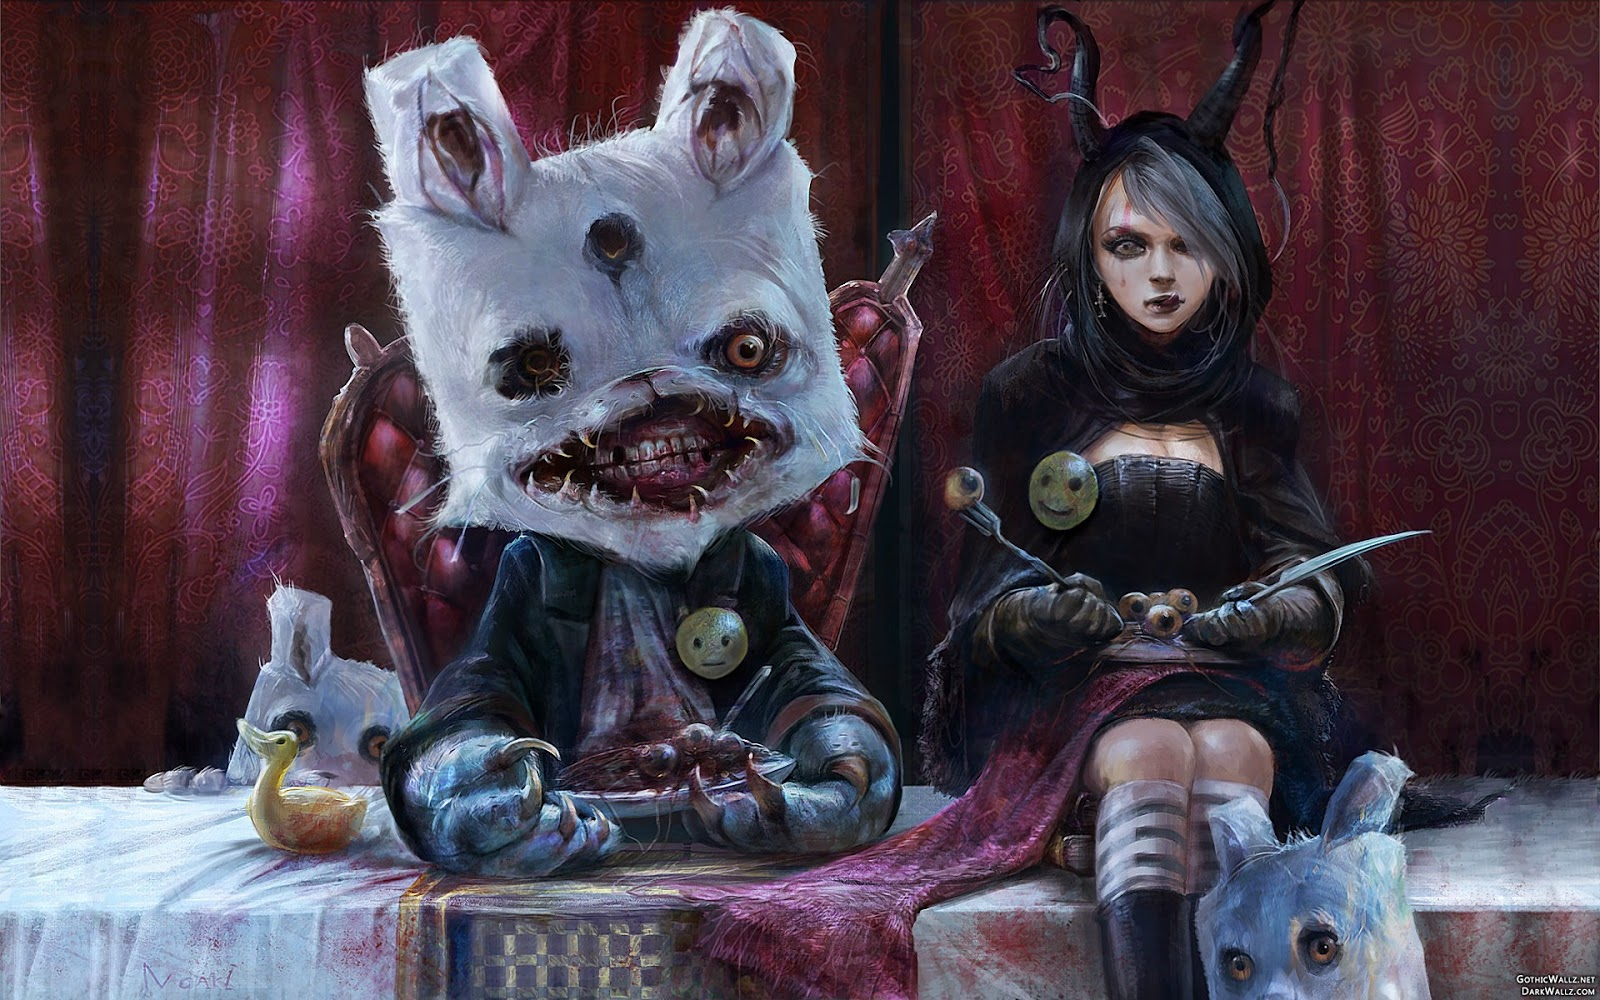 Creepy girl with her scary teddy beer | Dark Gothic Wallpaper Download